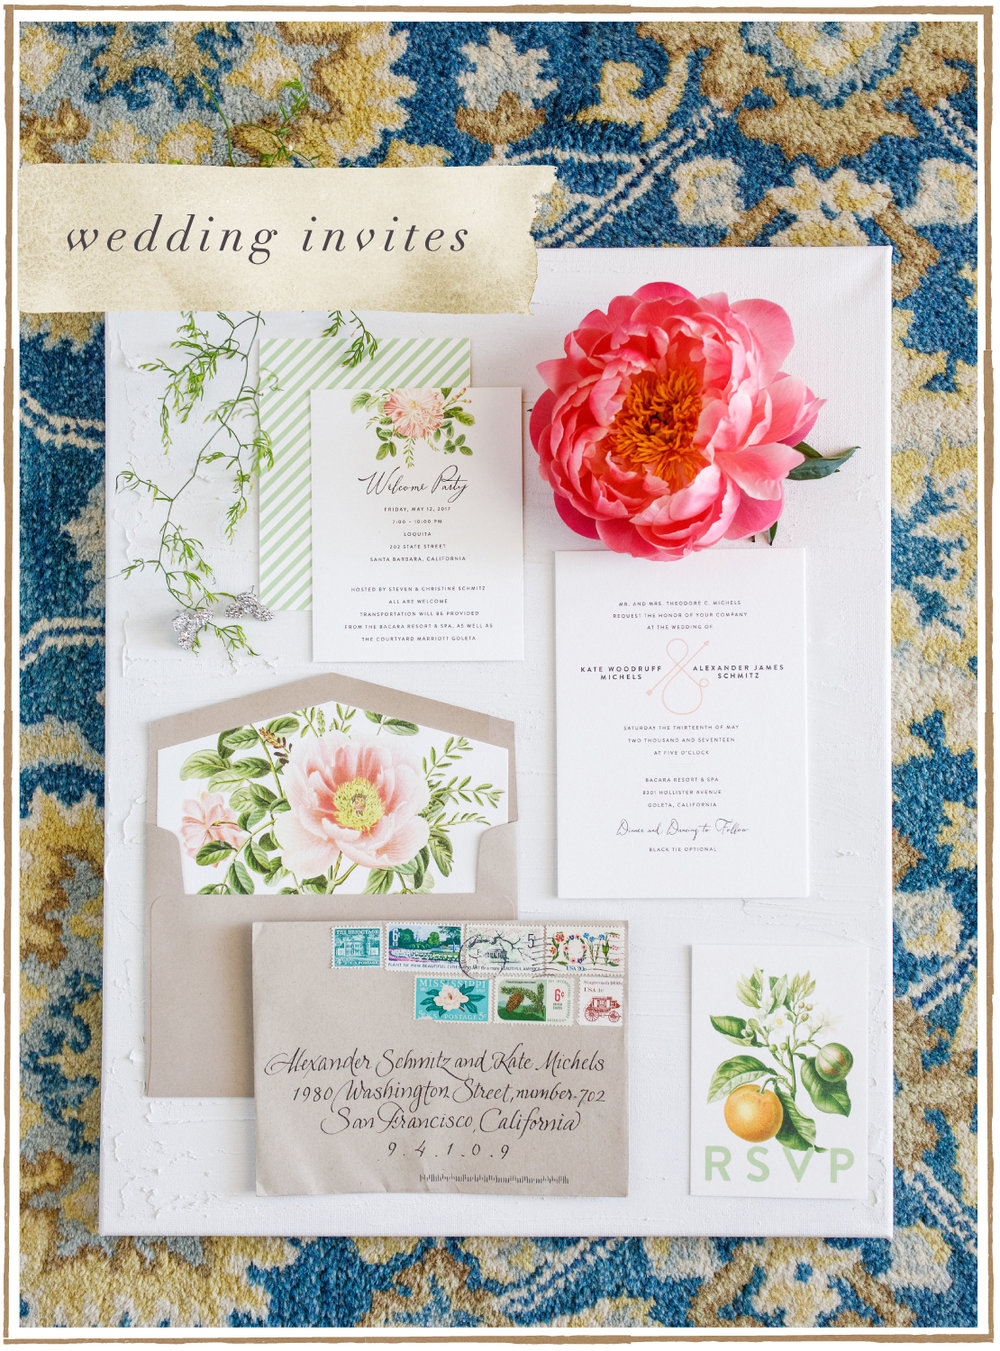 oakorchid-weddinginvites.jpg